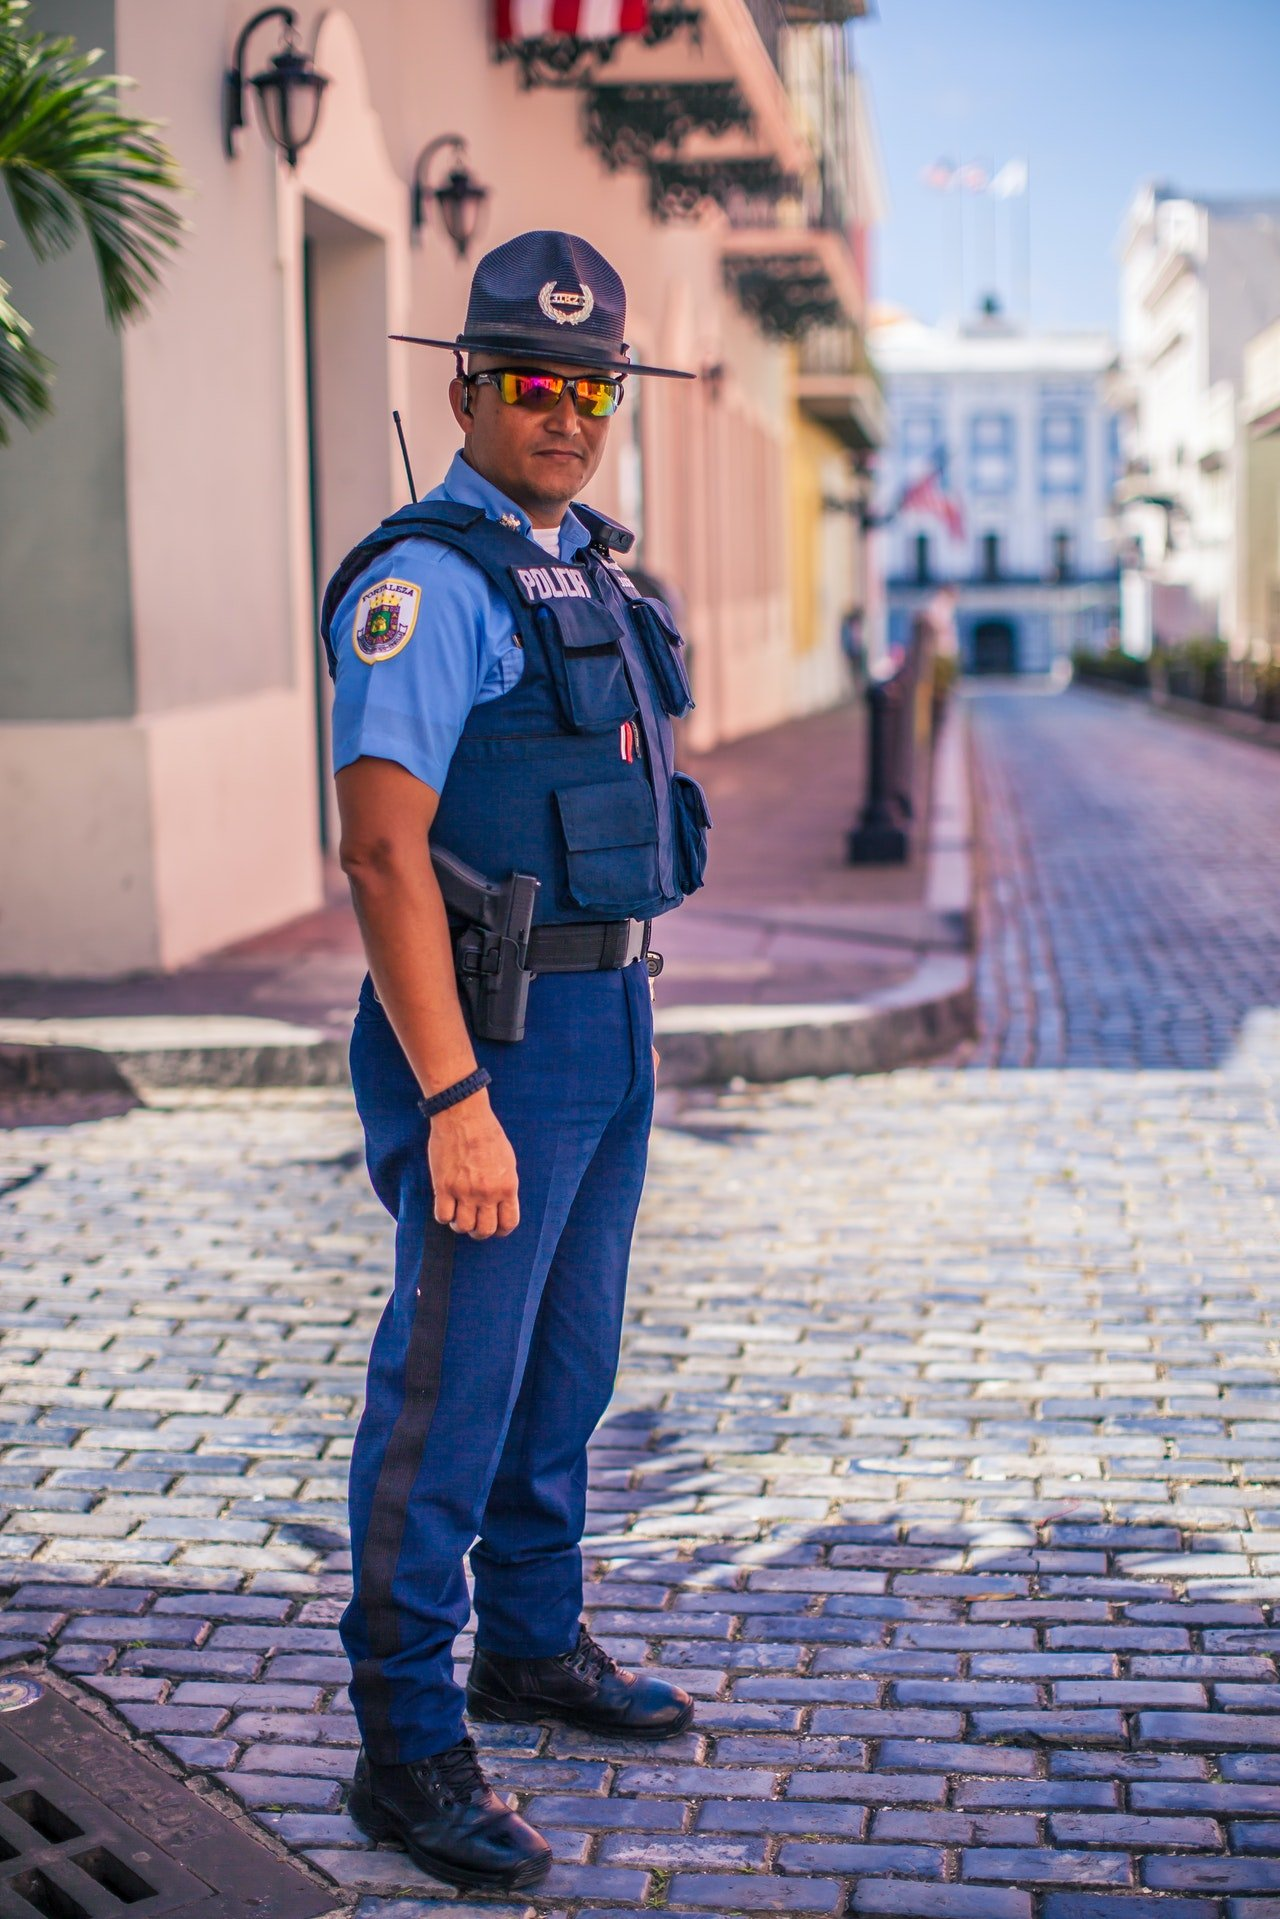 A fully kitted police officer   Photo: Pexels